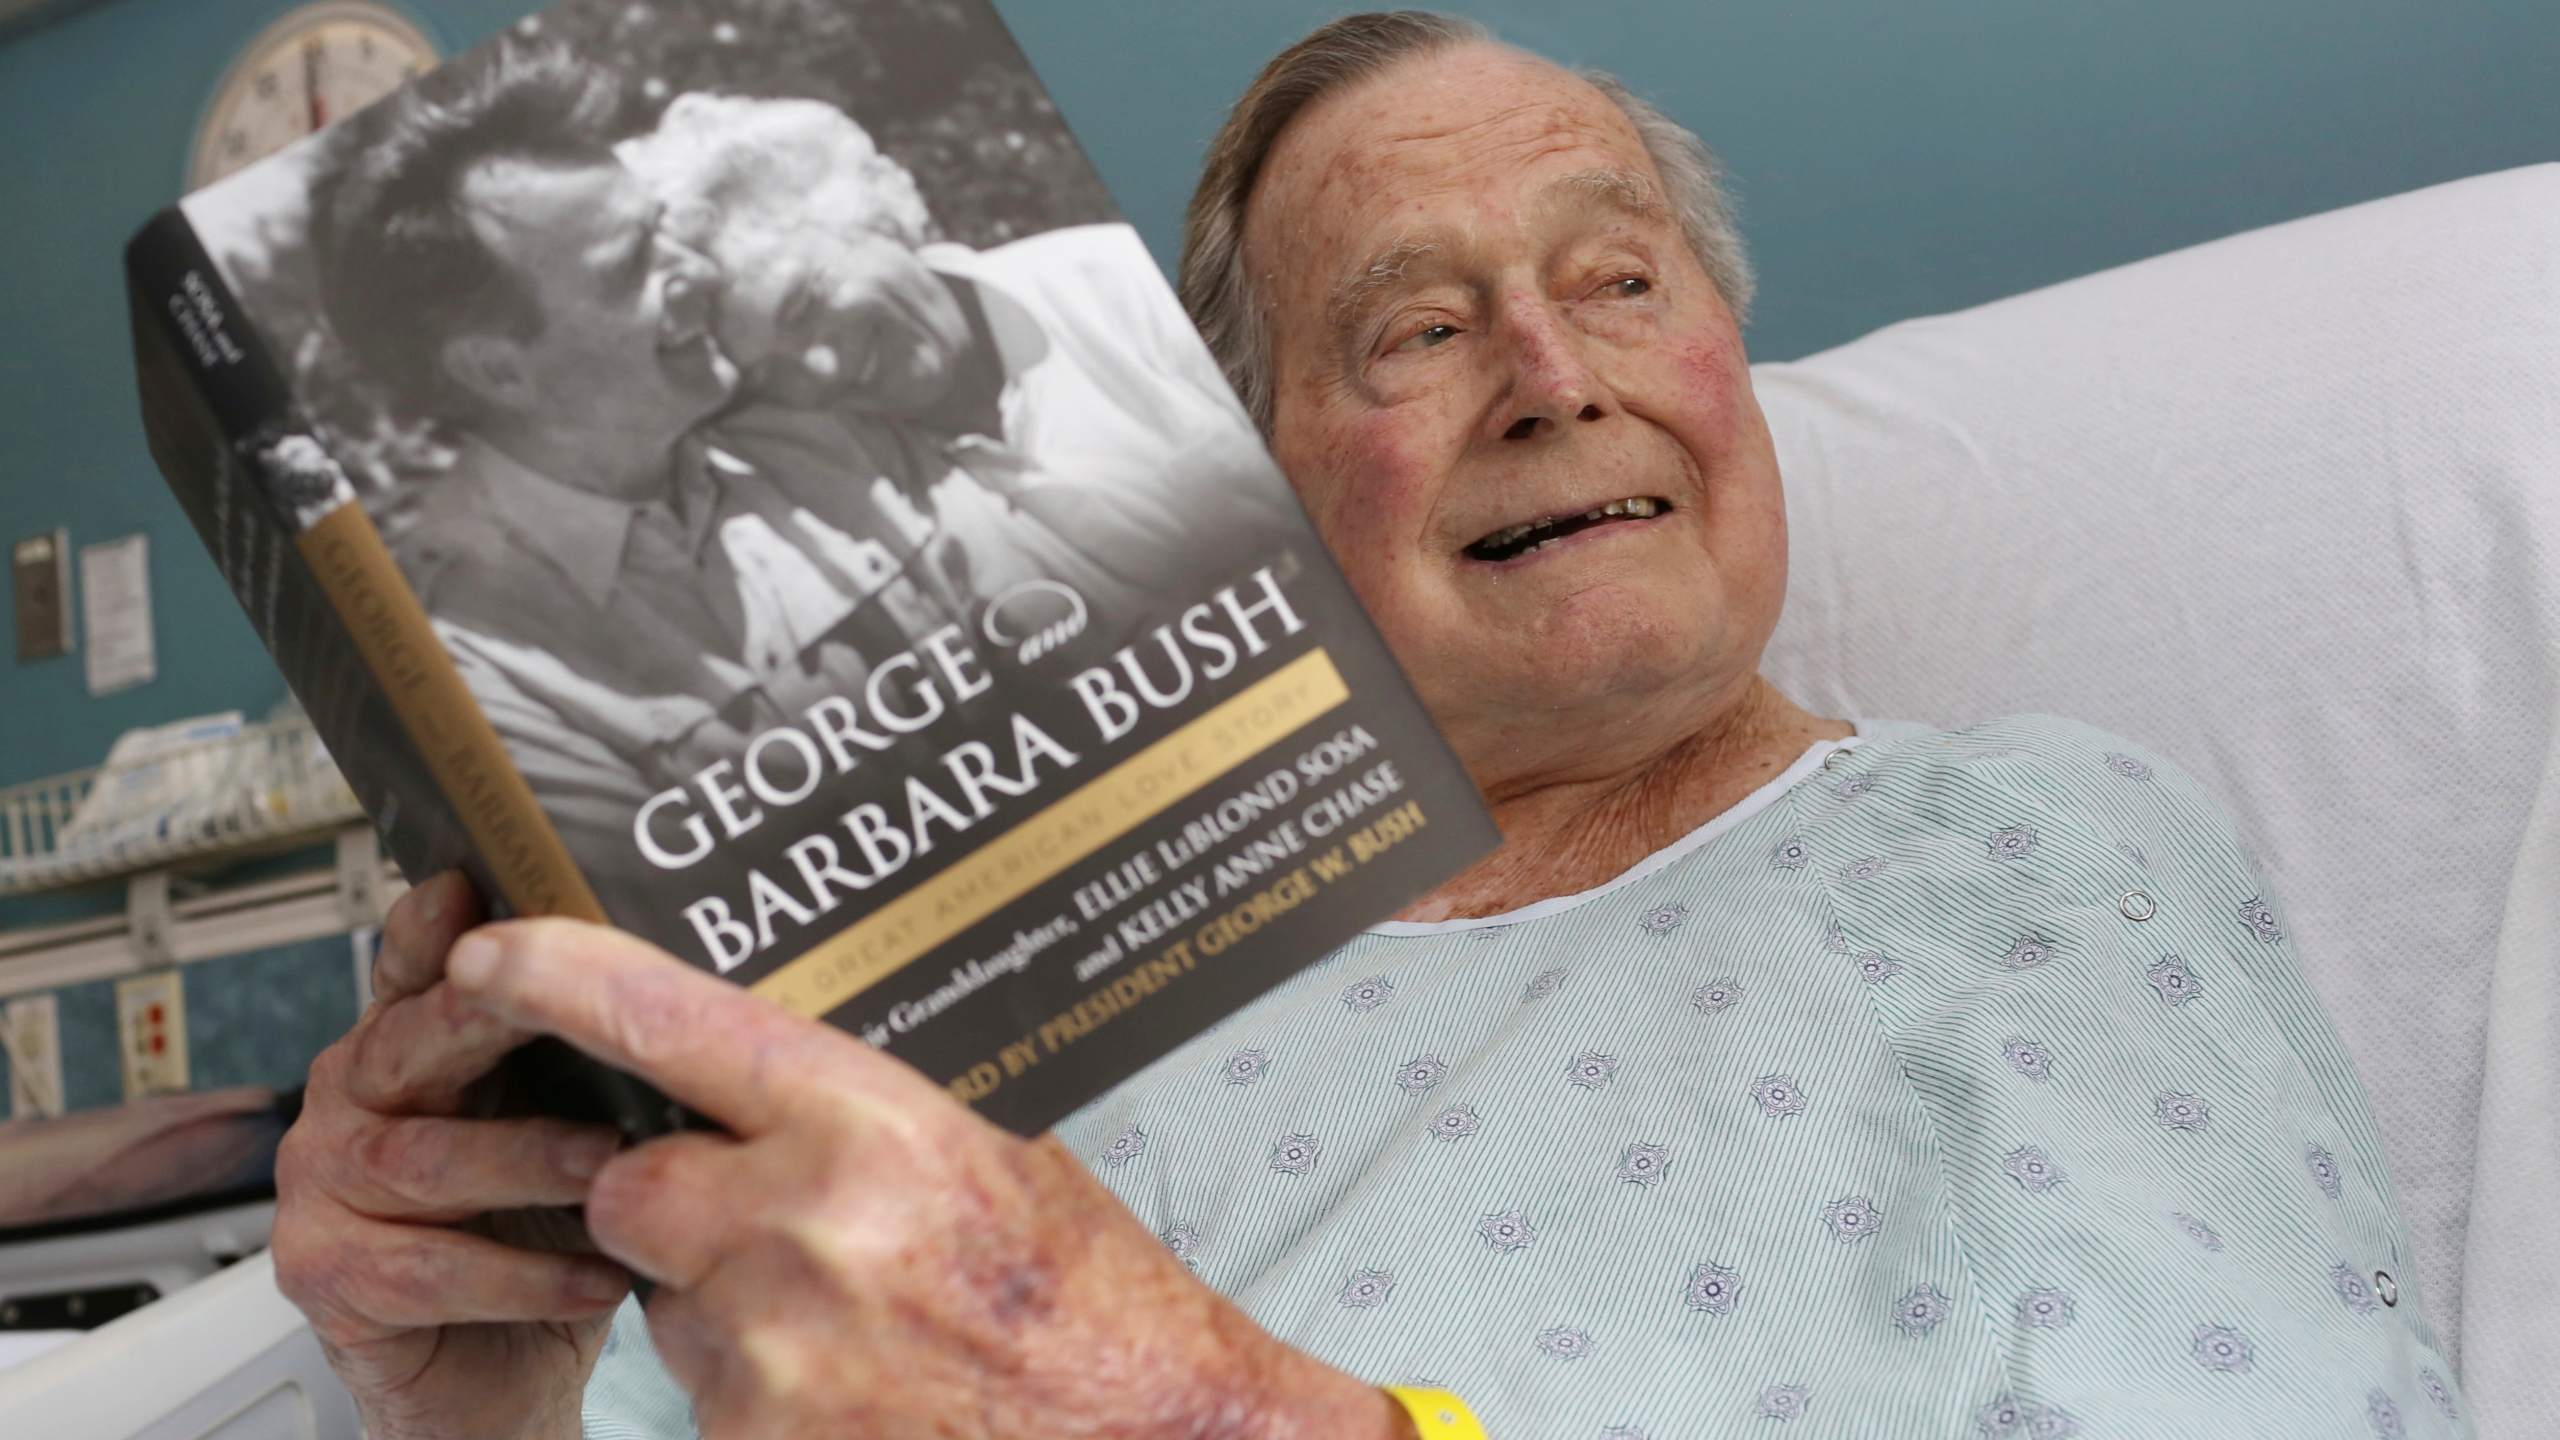 George_HW_Bush_Birthday_86868-159532.jpg54797031